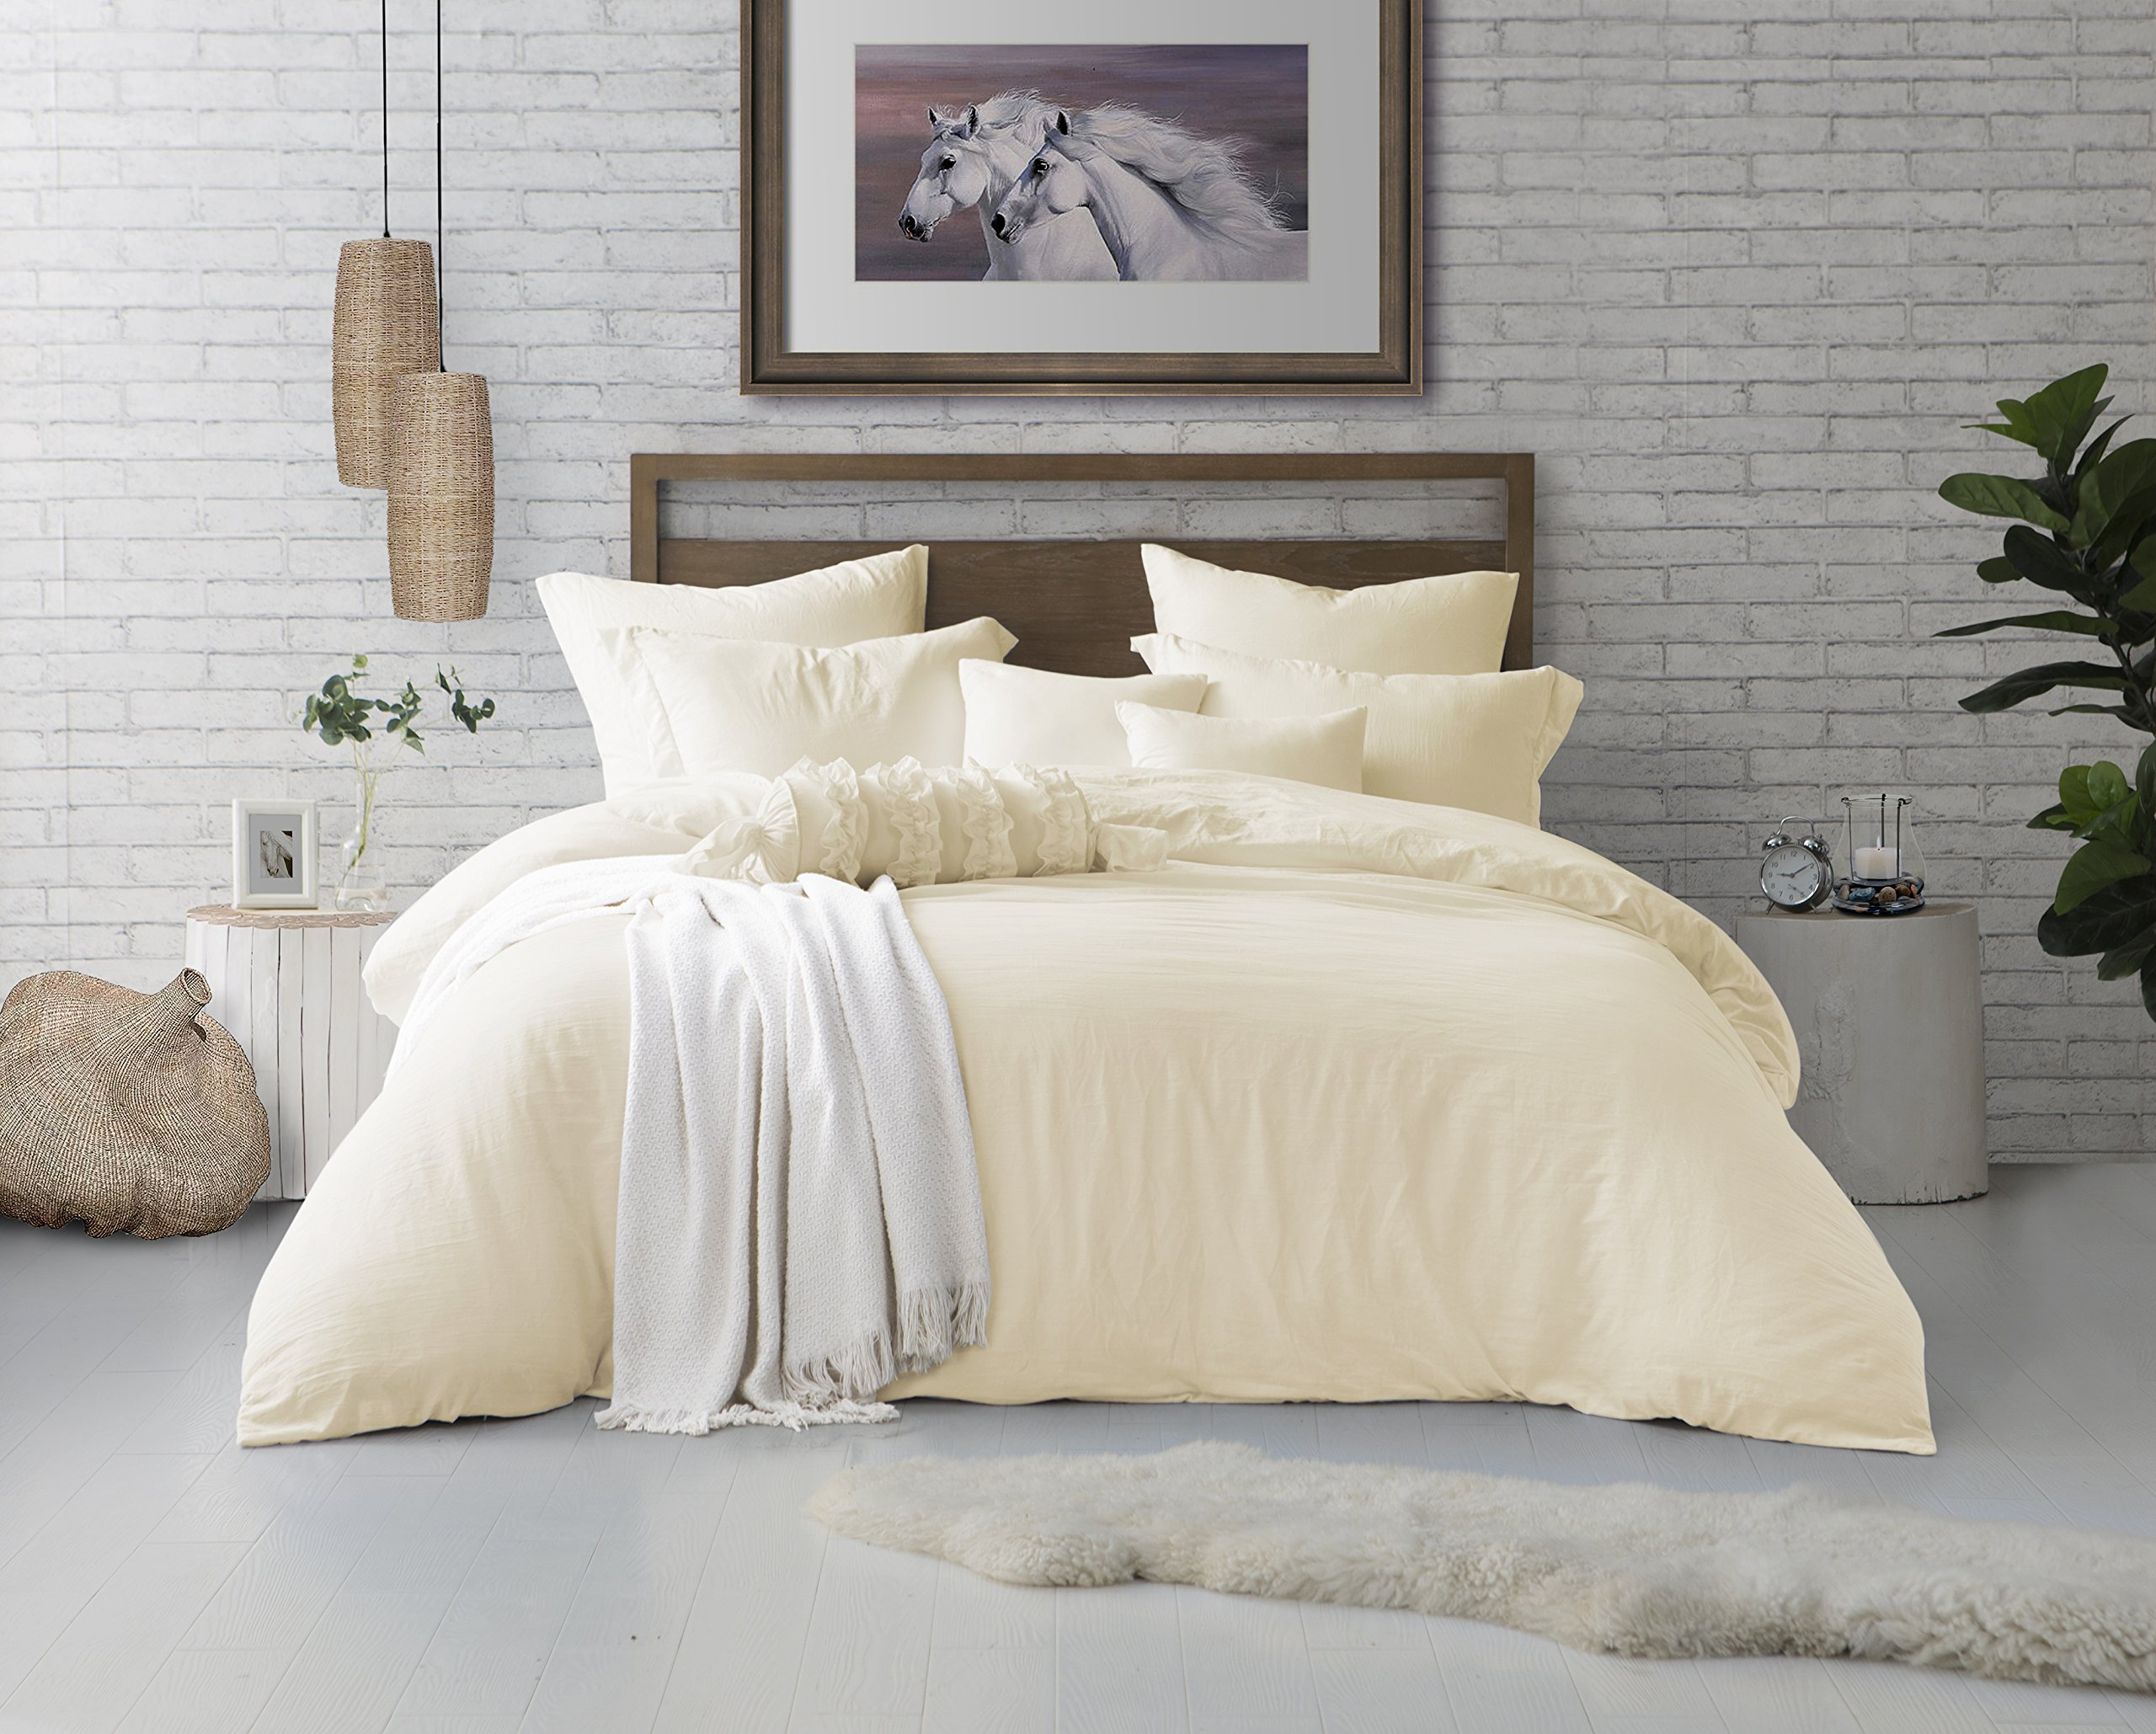 Swift Home Microfiber Washed Crinkle Duvet Cover & Sham (1 Duvet Cover with Zipper Closure & 2 Pillow Shams), Premium Hotel Quality Bed Set, Ultra-Soft & Hypoallergenic – King/Cal King, Sweet Cream